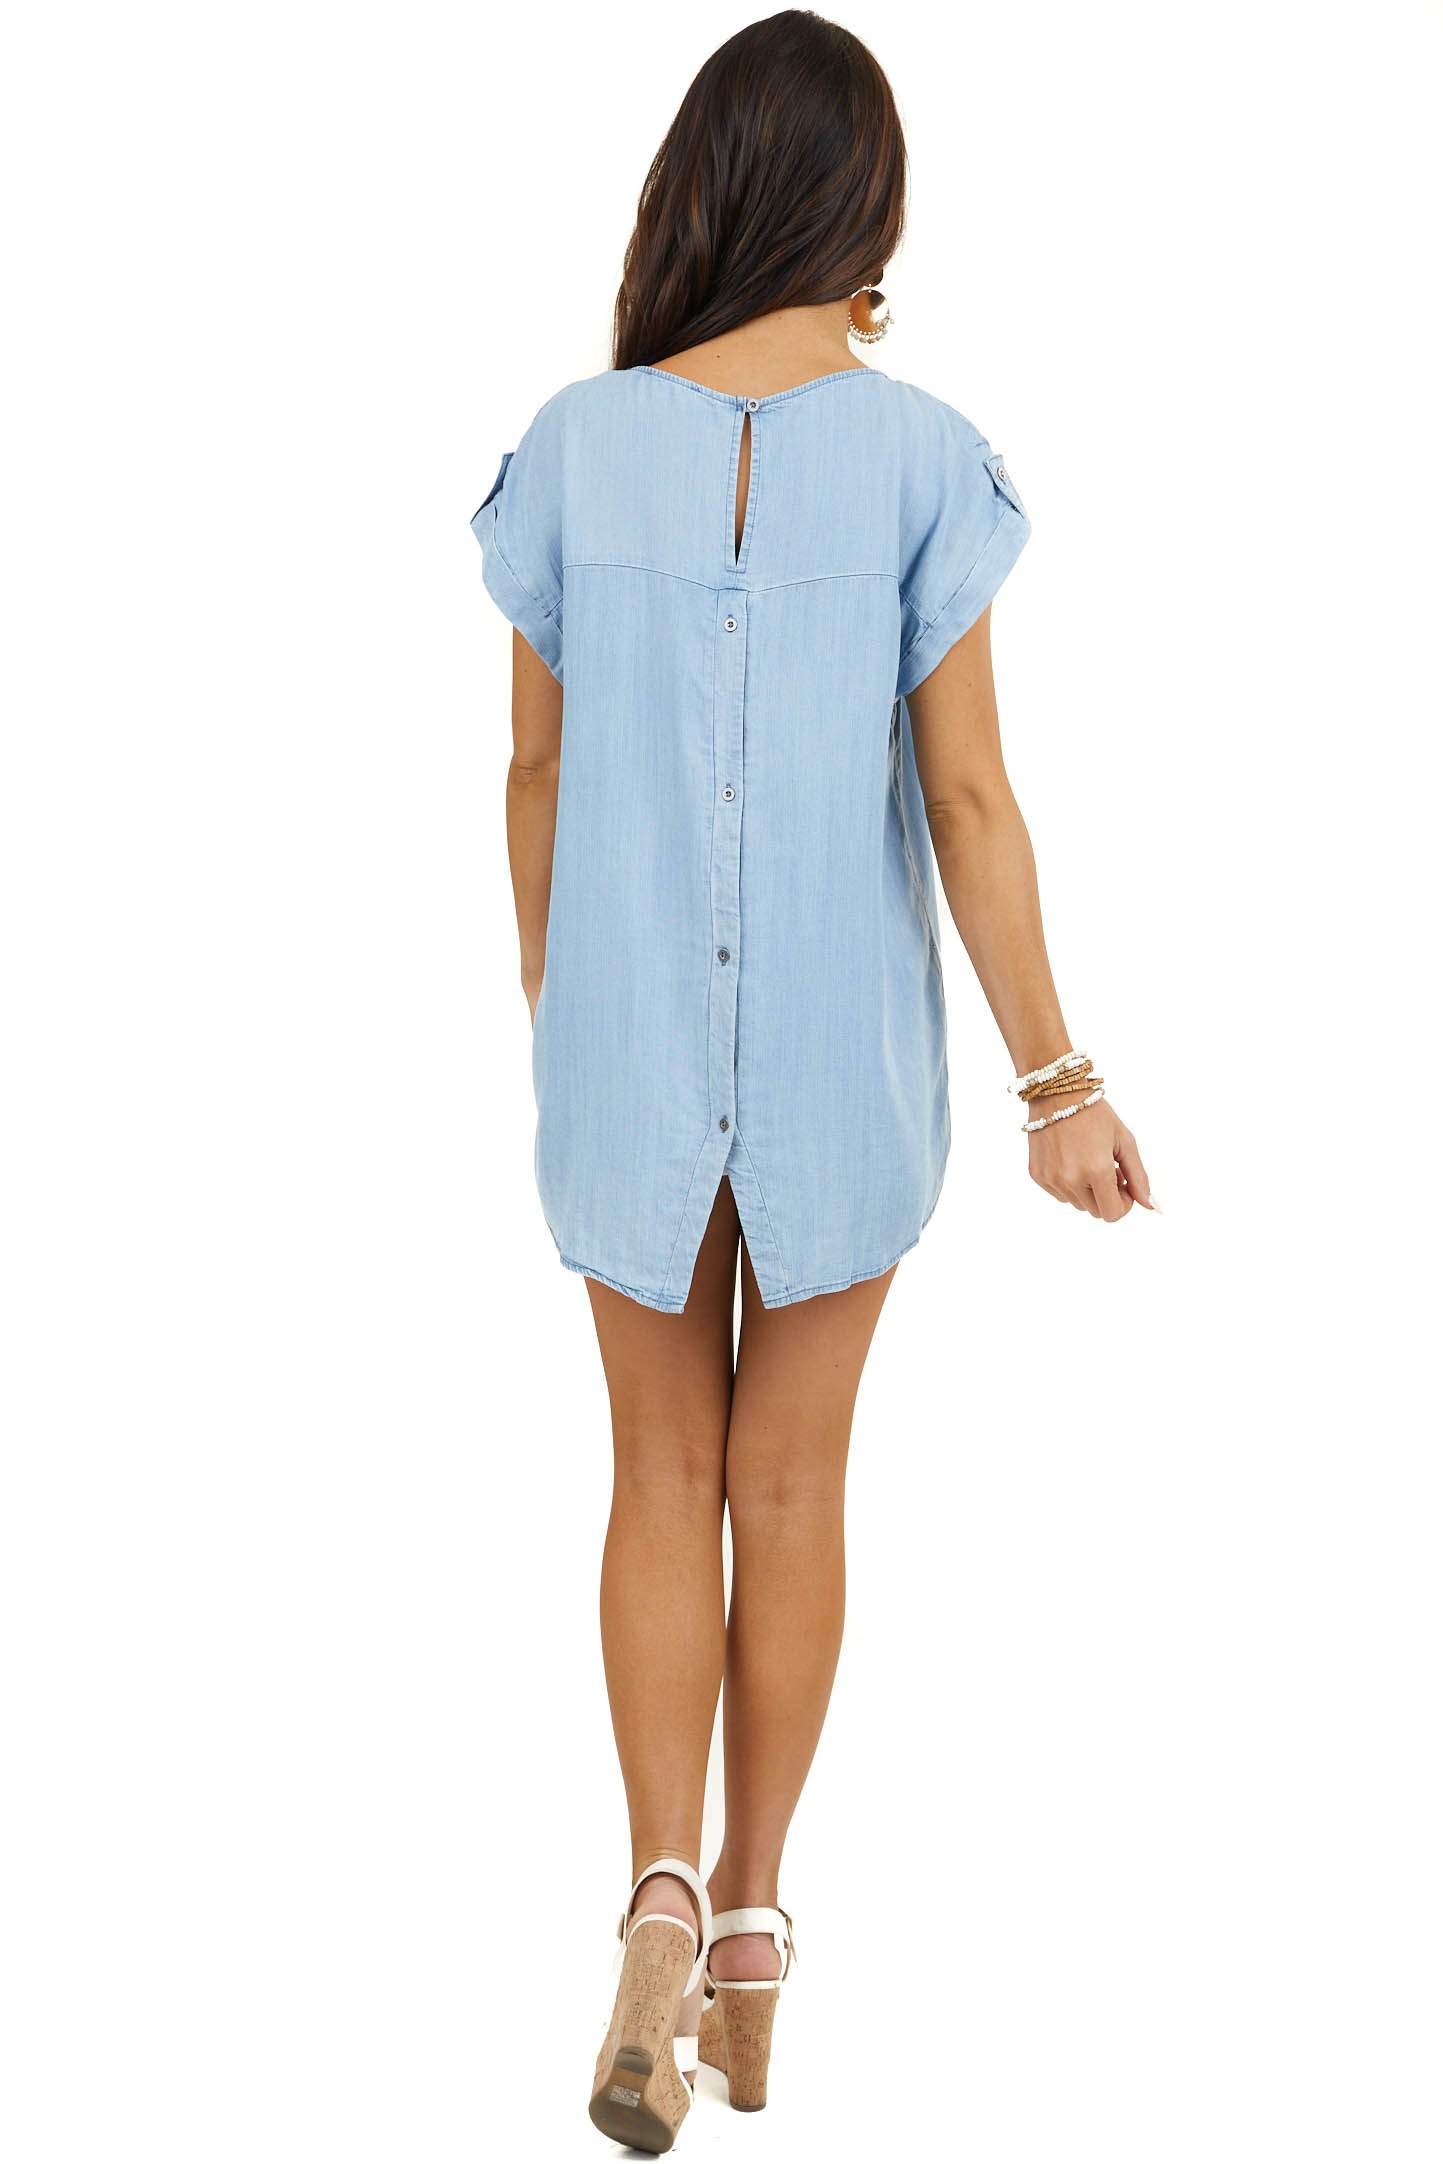 Light Wash Denim Top with Chest Pocket and Buttoned Back